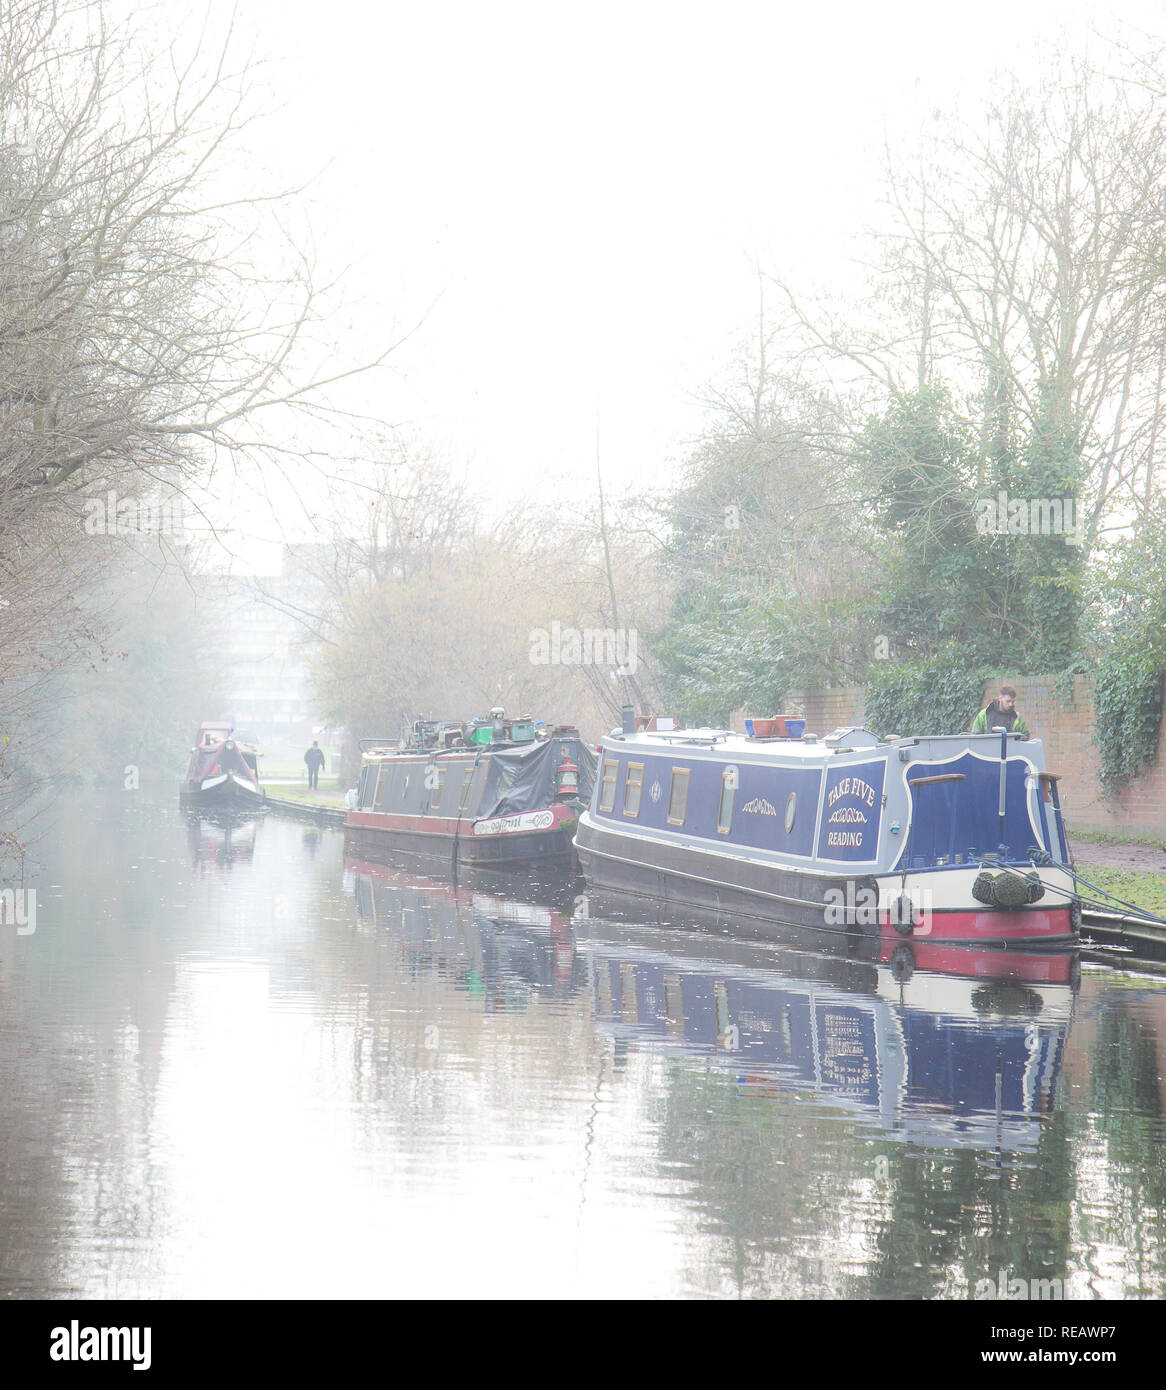 Kidderminster, UK, 21st January, 2019. UK weather: it's a misty, cold and damp day today with the sun struggling to break through the clouds. Temperatures are barely reaching 5 degrees and people in these narrow-boats are staying put and not venturing out today. Credit: Lee Hudson/Alamy Live News Stock Photo